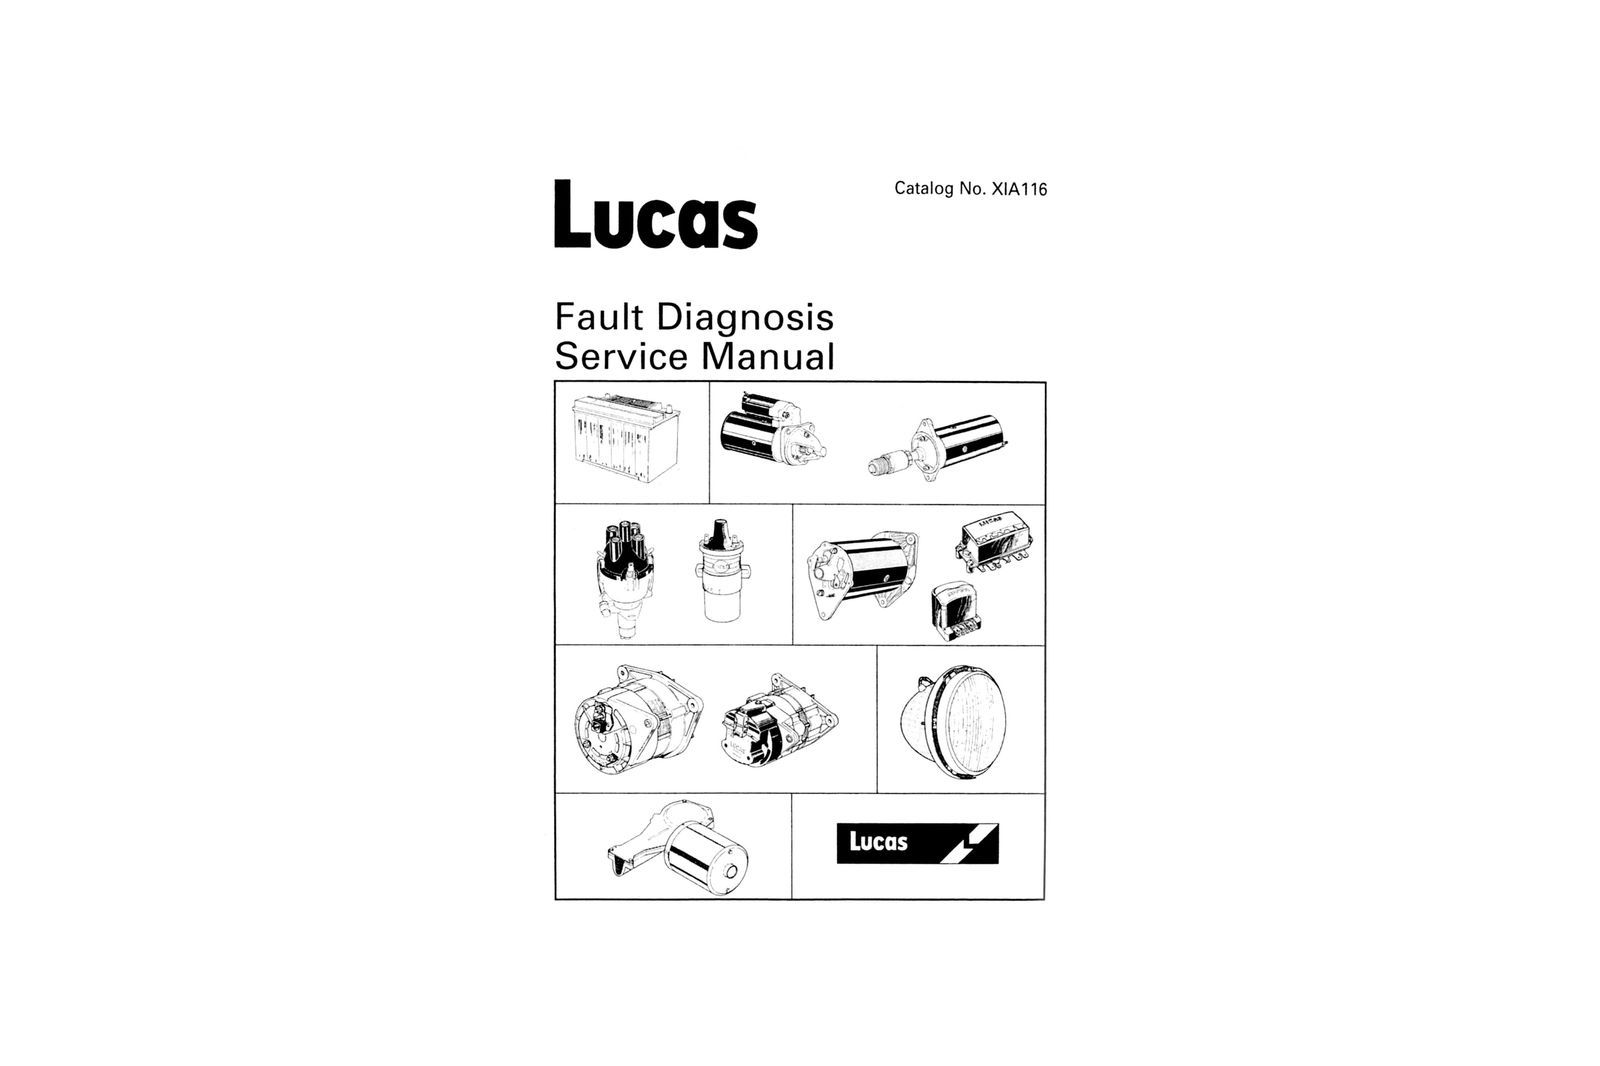 #Lucas fault diagnose manual, english, GAC1029X